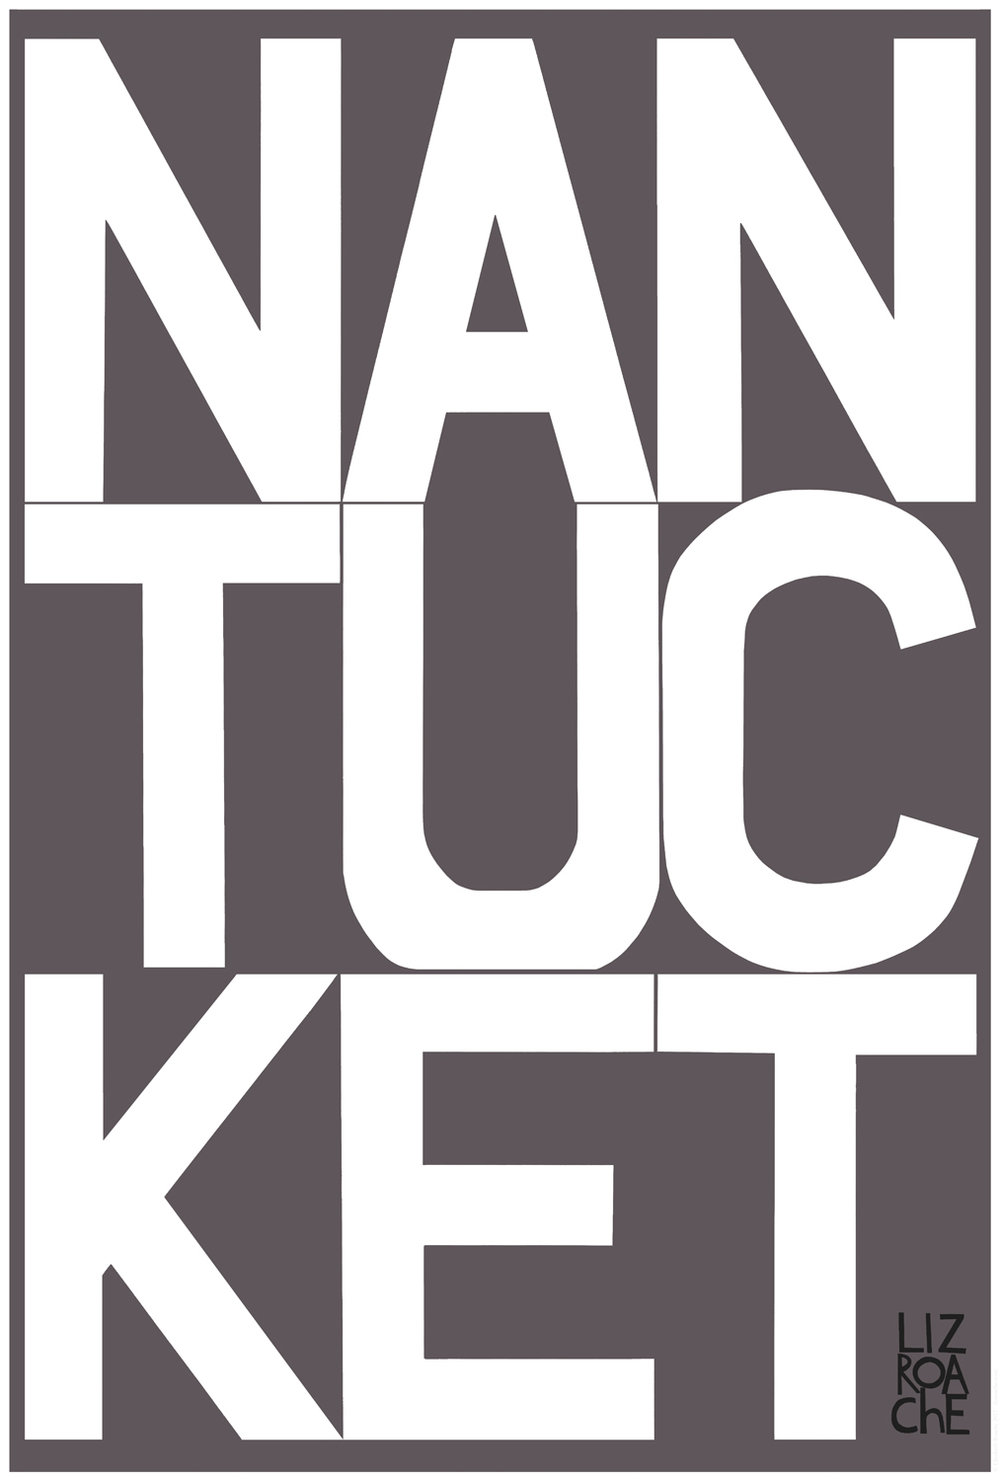 Nantucket_Charcoal_425C.jpg